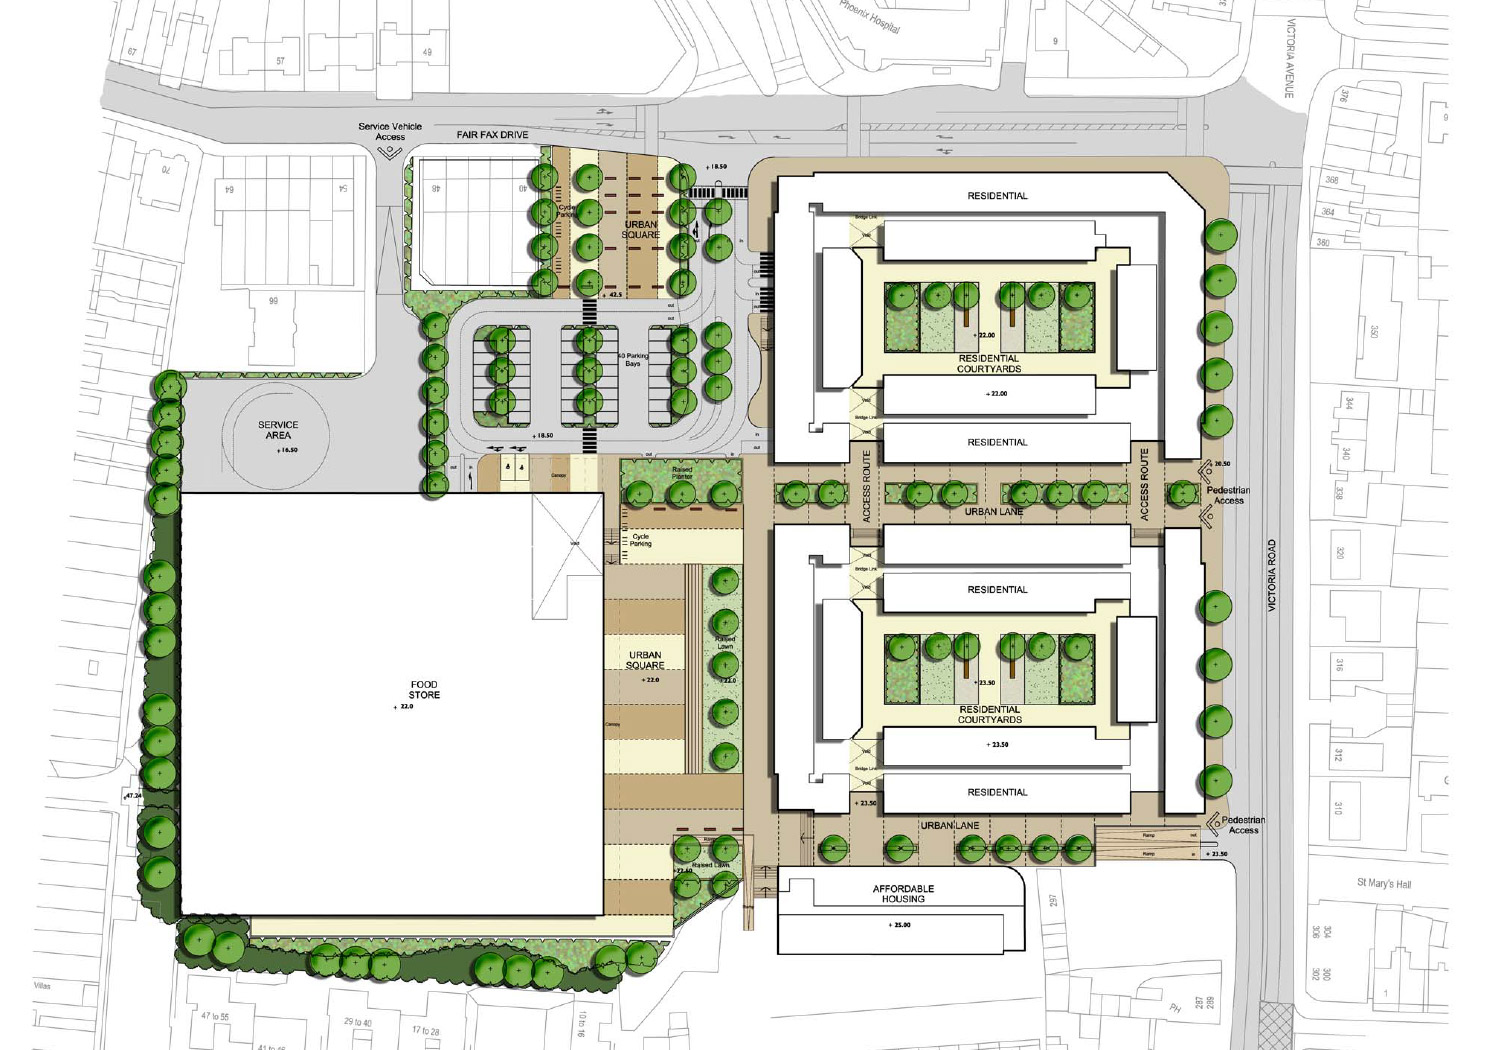 Projects-CommInd-SUFC-Plan2-1500x1050